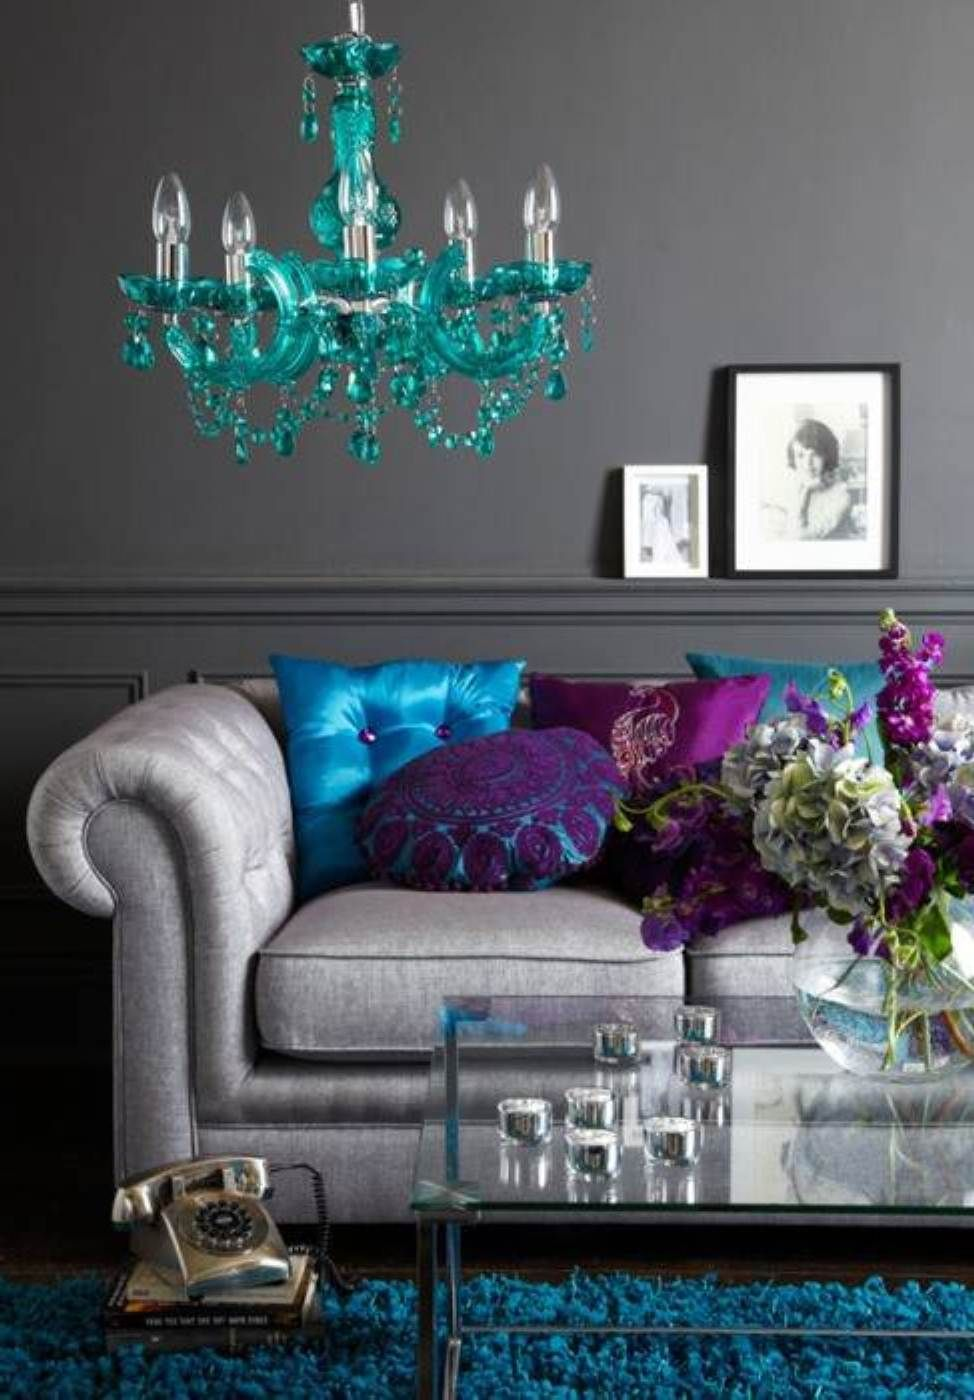 Teal and yellow living room - Grey Wall Color Feng Shui Living Room And White Sofa Color With Soft Blue Crystal Hanging